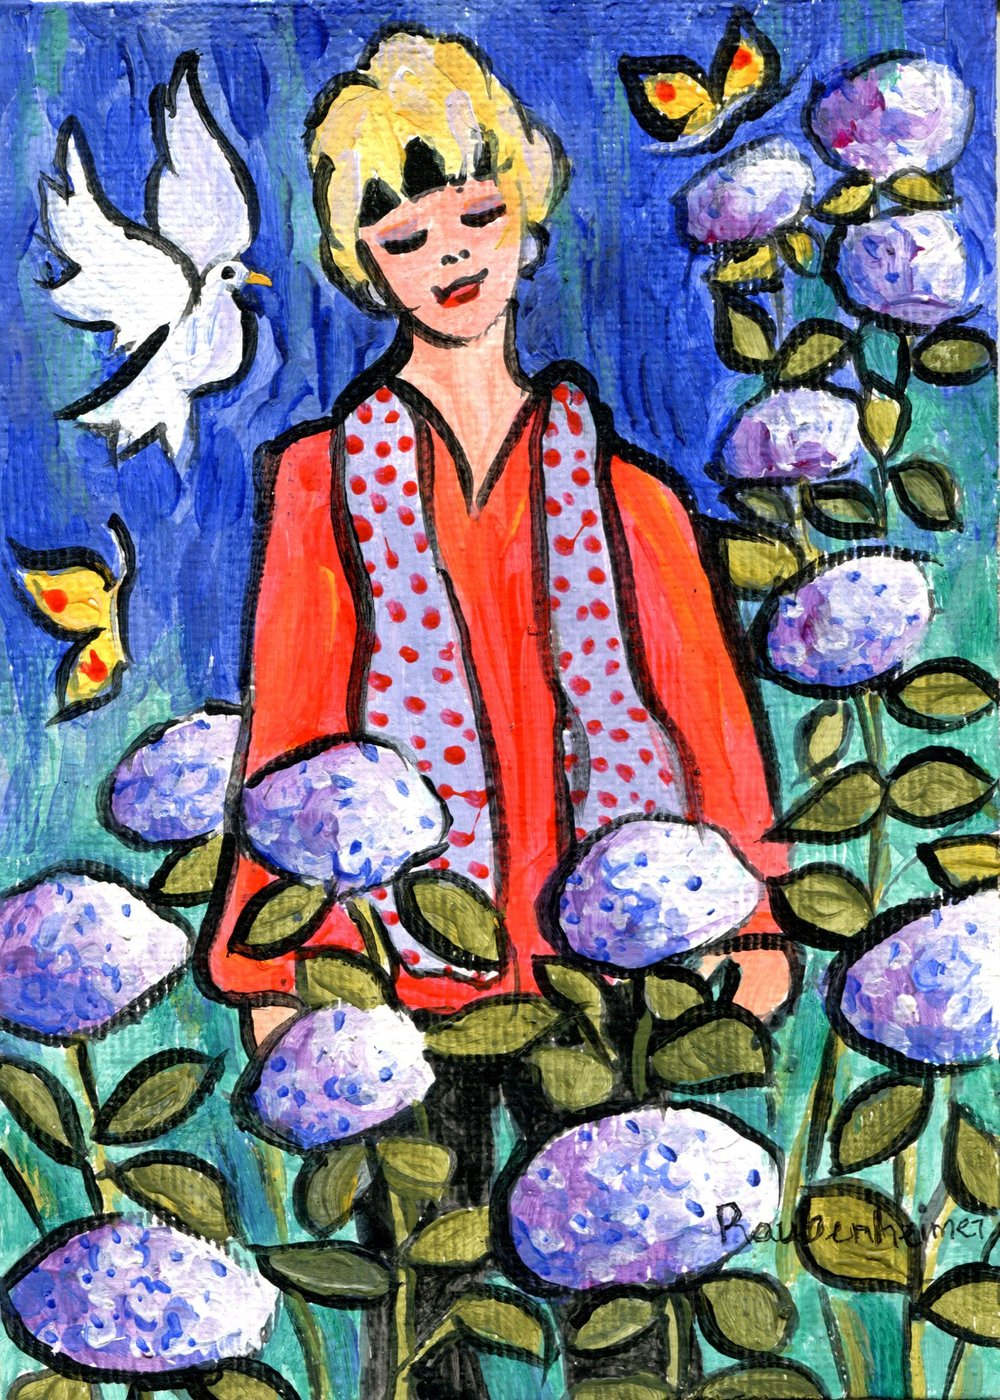 12A NARDI ANNE RAUBENHEIMER, I'M NO STRANGER TO HYDRANGEA, ACRYLIC ON BOARD